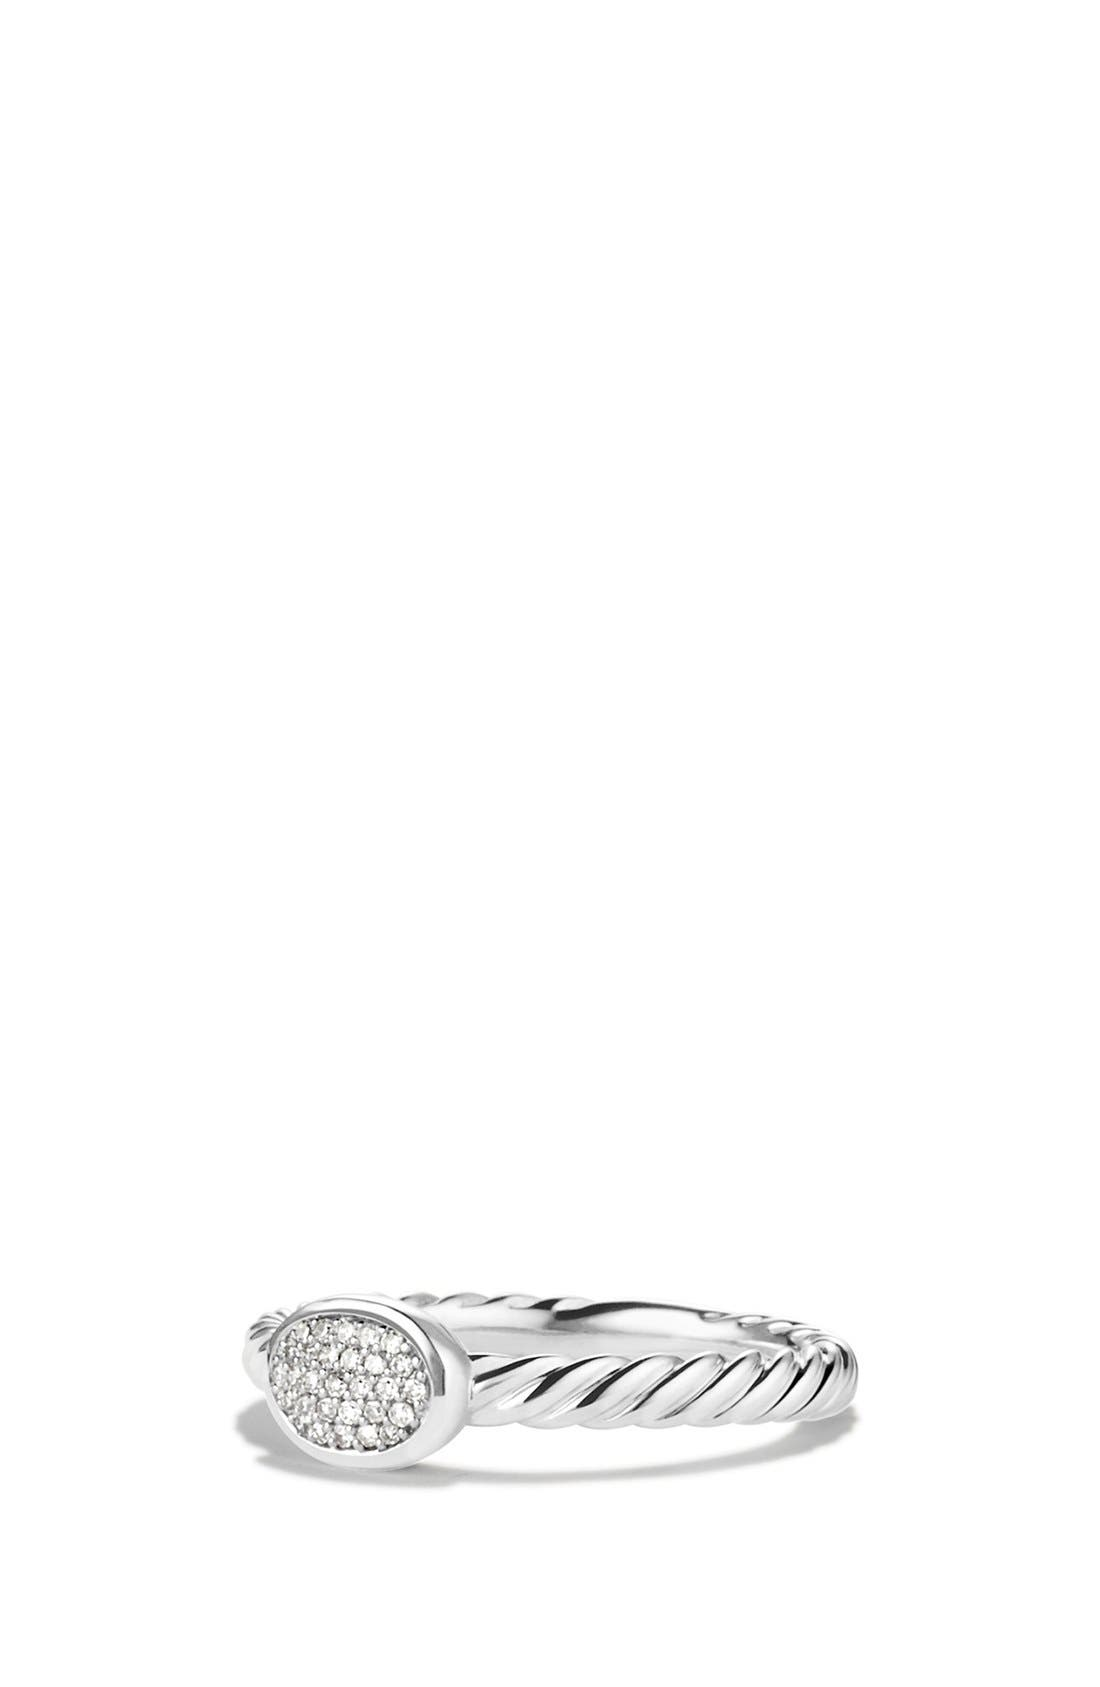 Main Image - David Yurman 'Cable Collectibles' Oval Ring with Diamonds